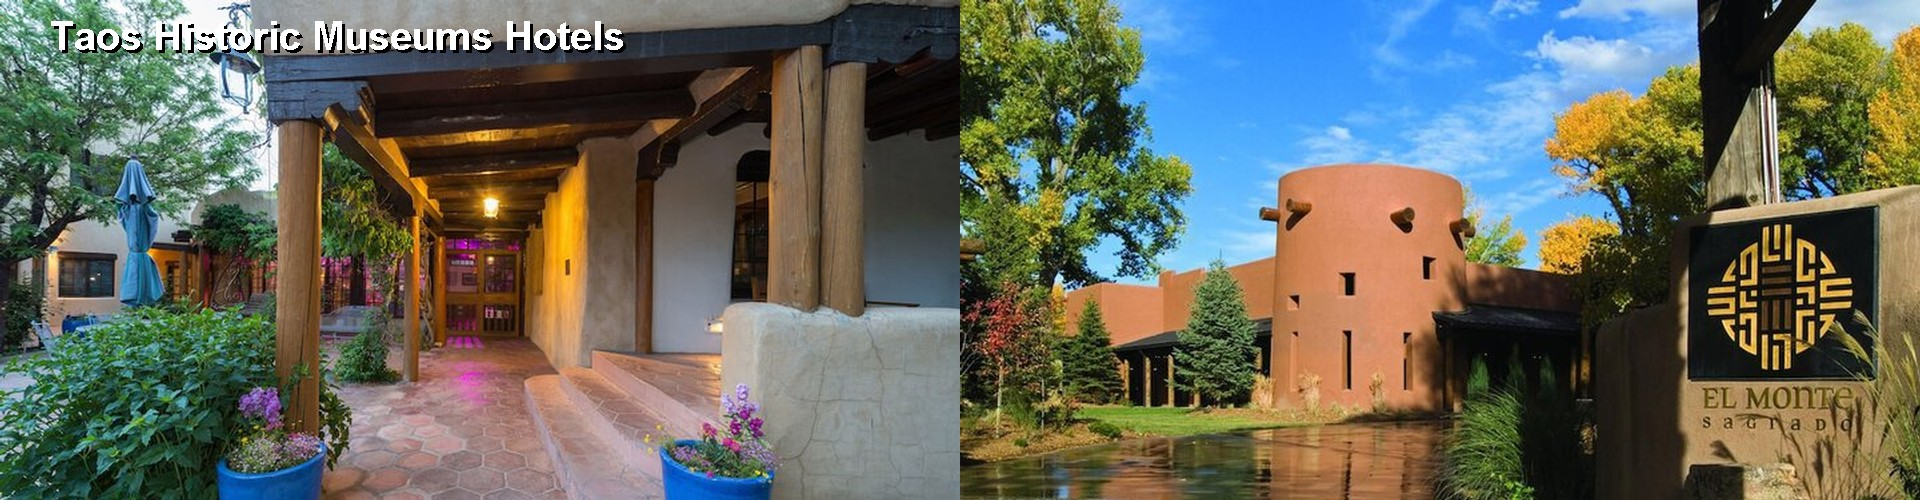 5 Best Hotels near Taos Historic Museums